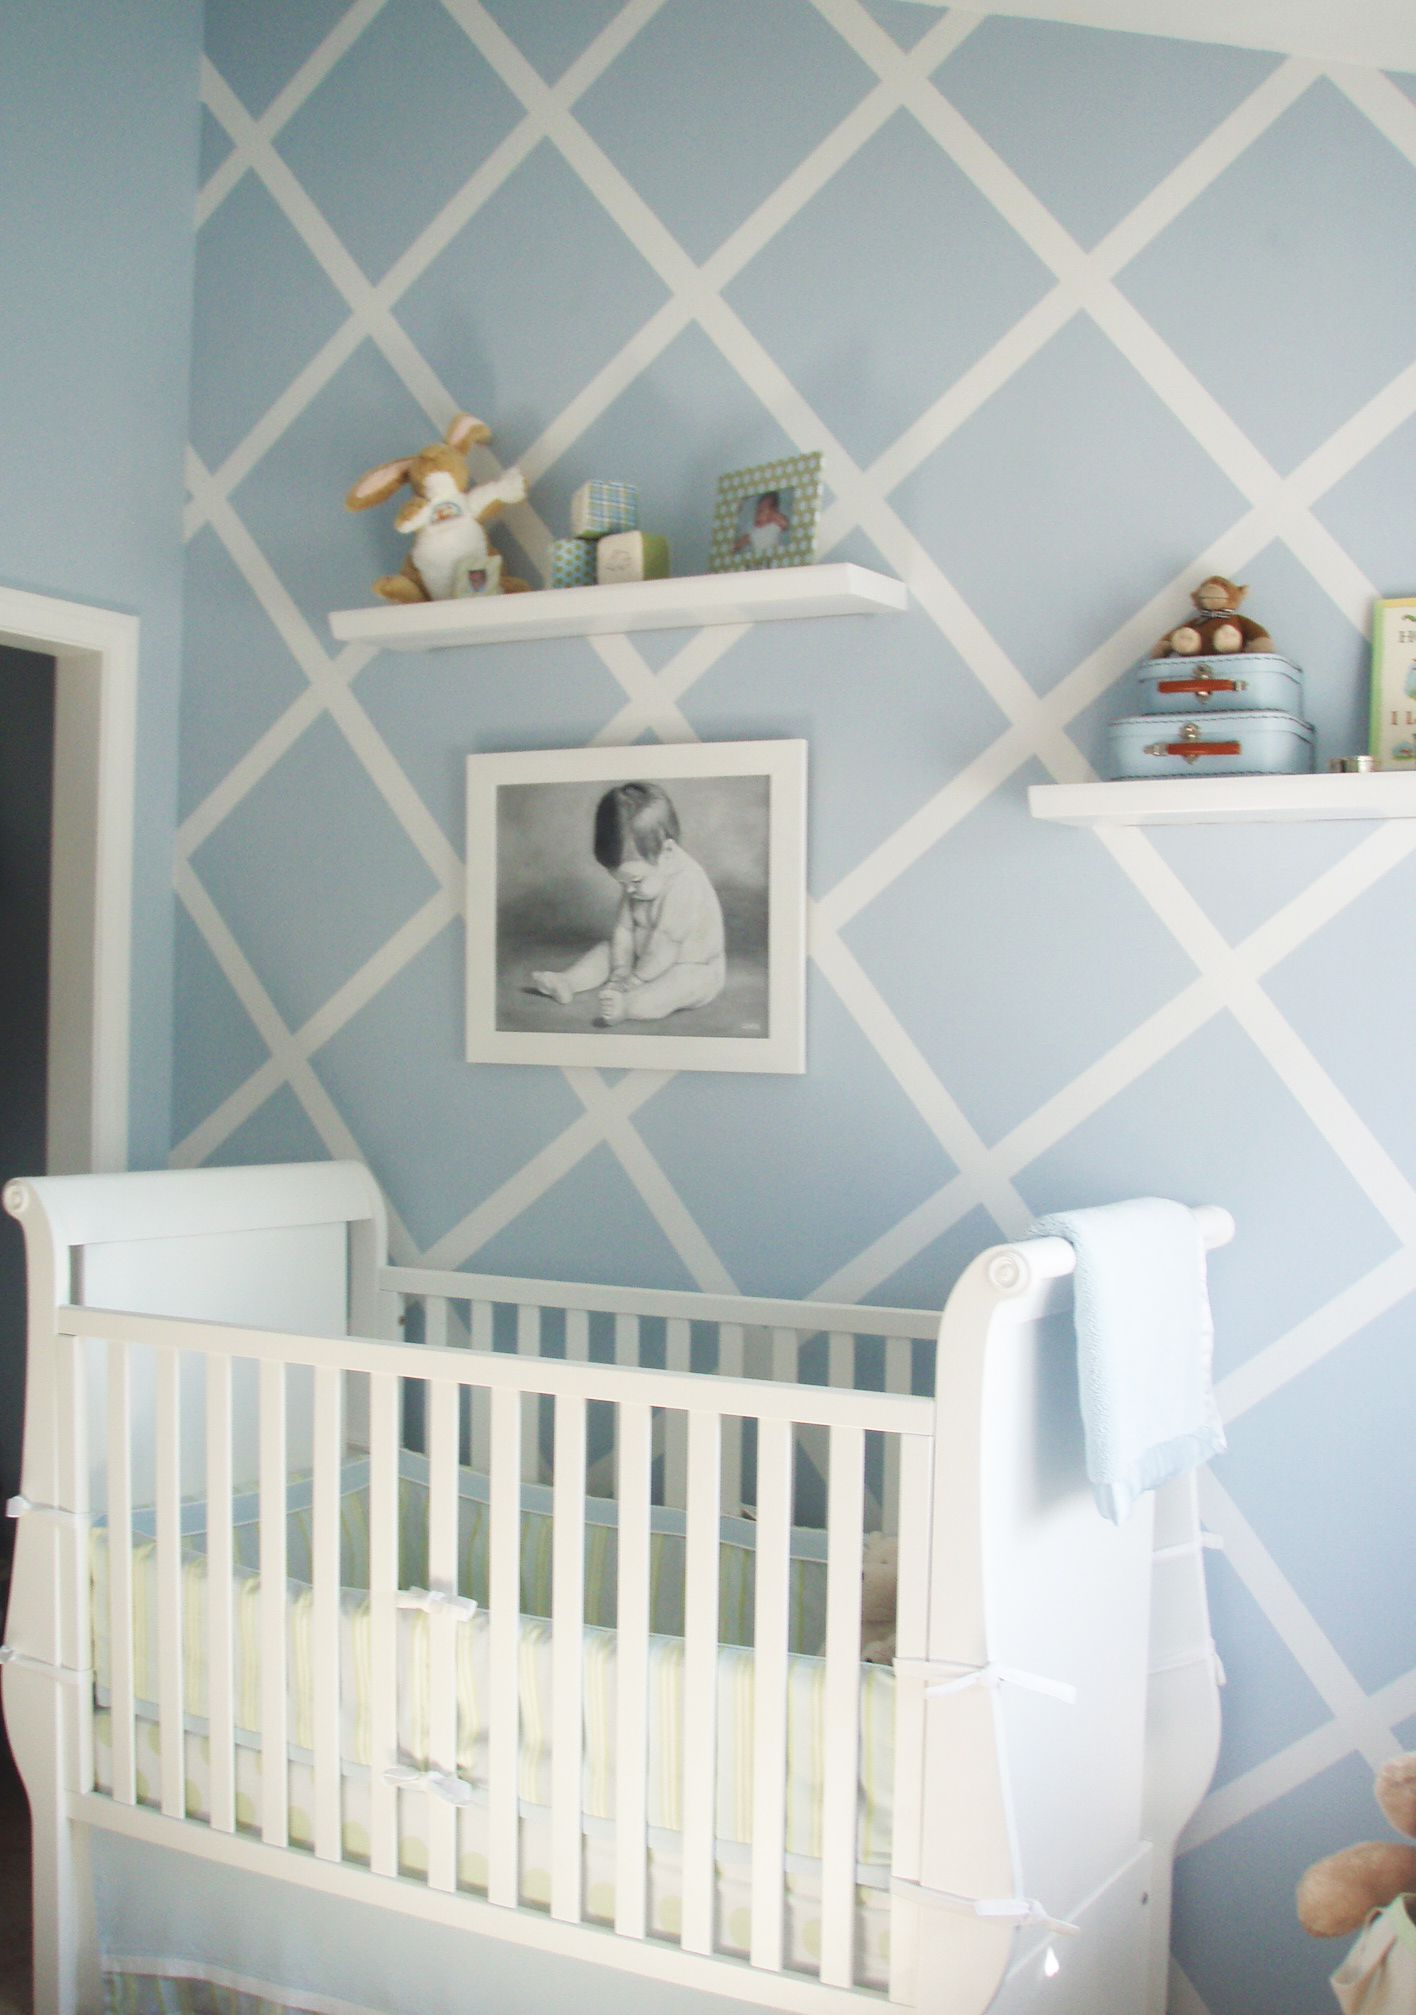 This was my favorite nursery when I